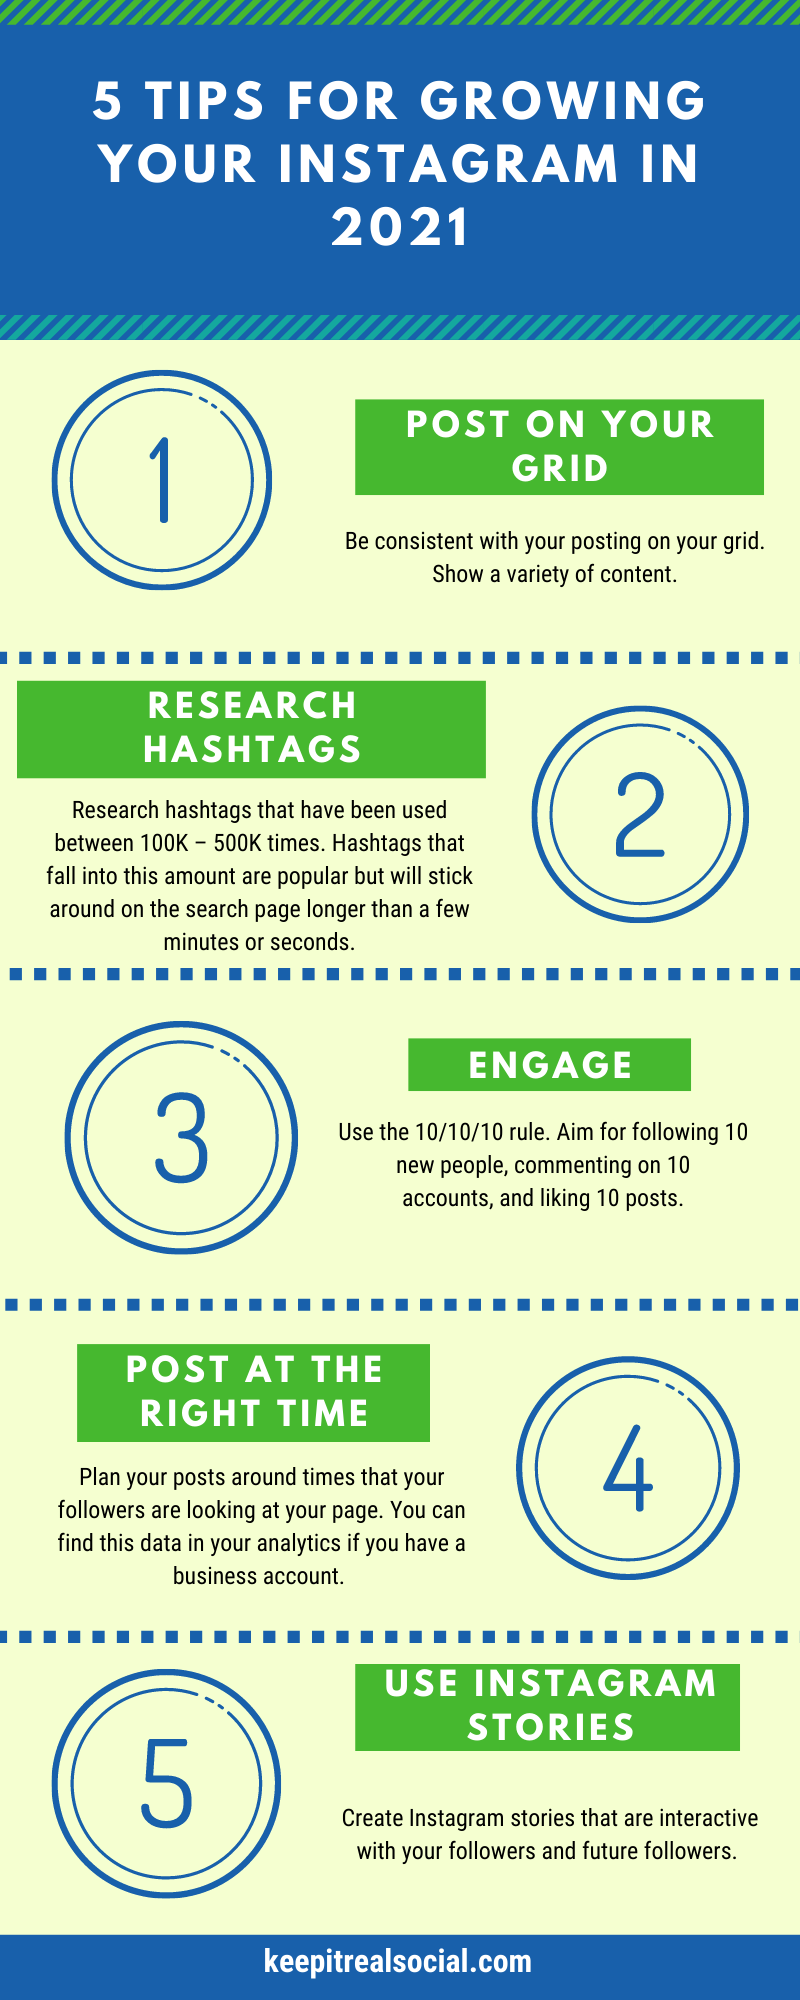 5 Tips For Growing Your Instagram In 2021 Infographic